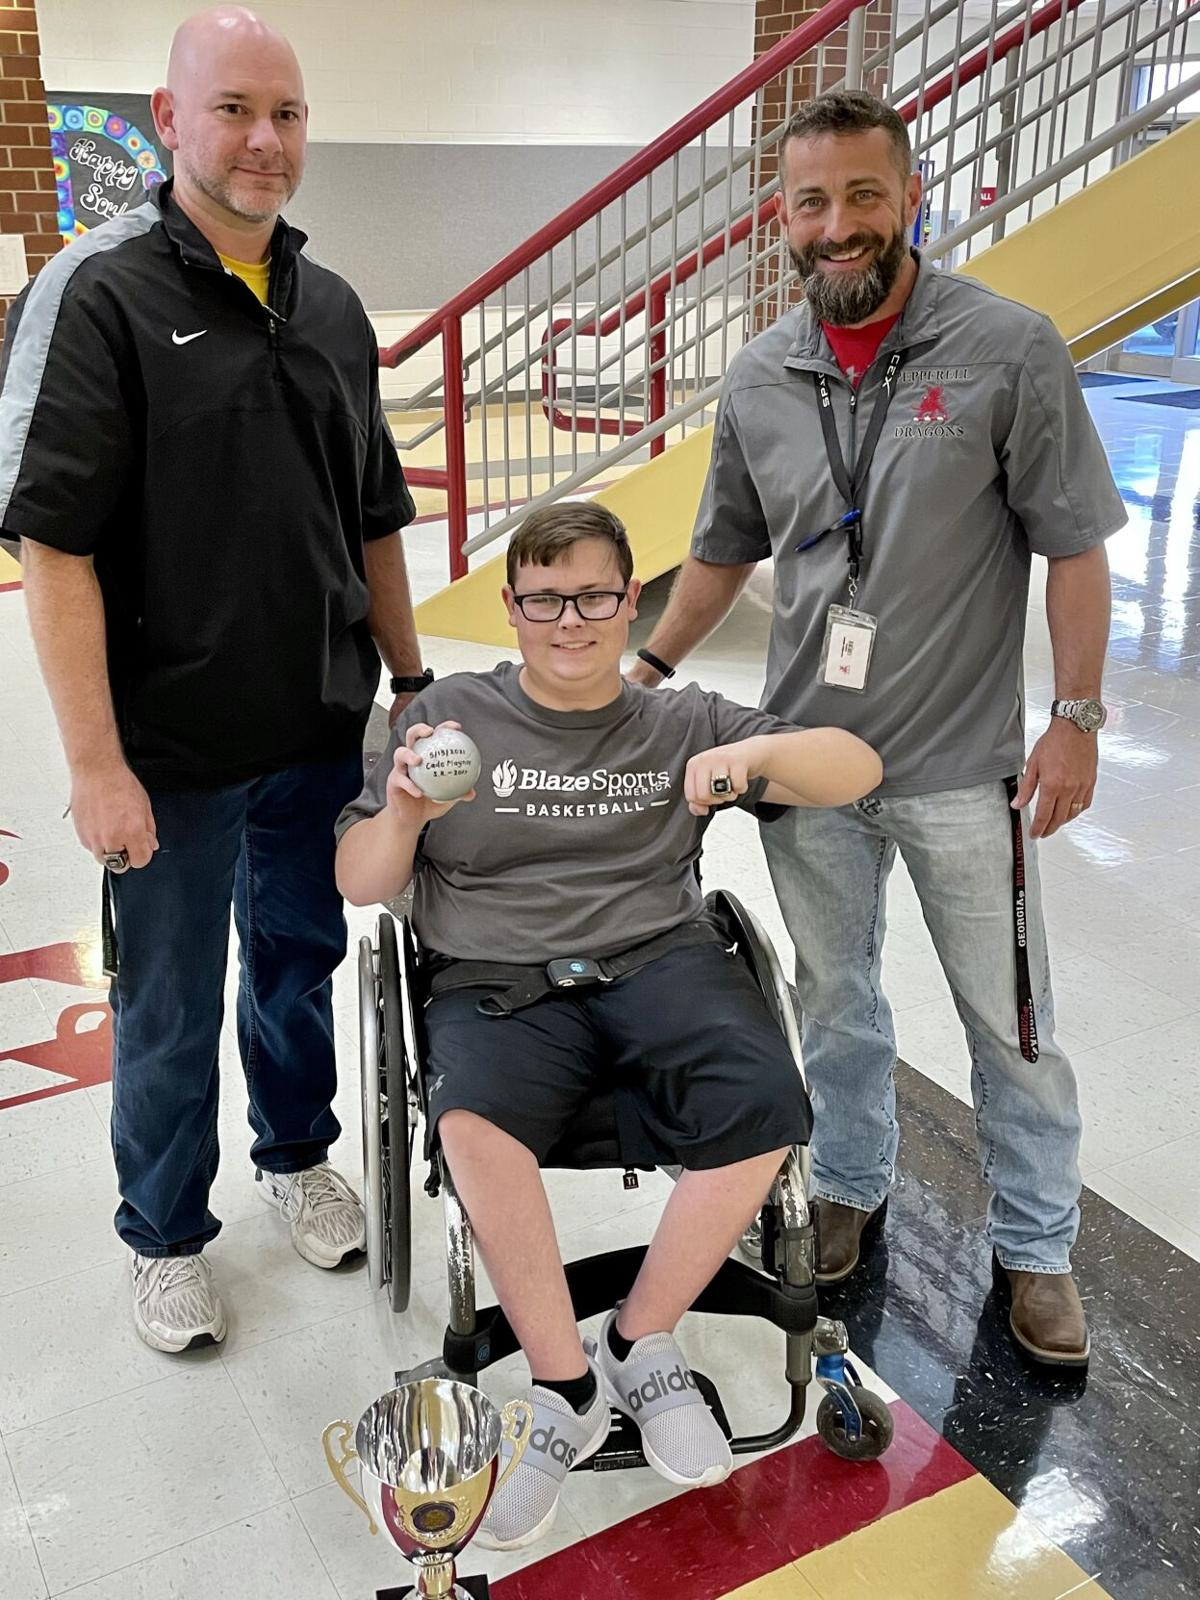 Pepperell's Cade Maynor wins adapted state championship